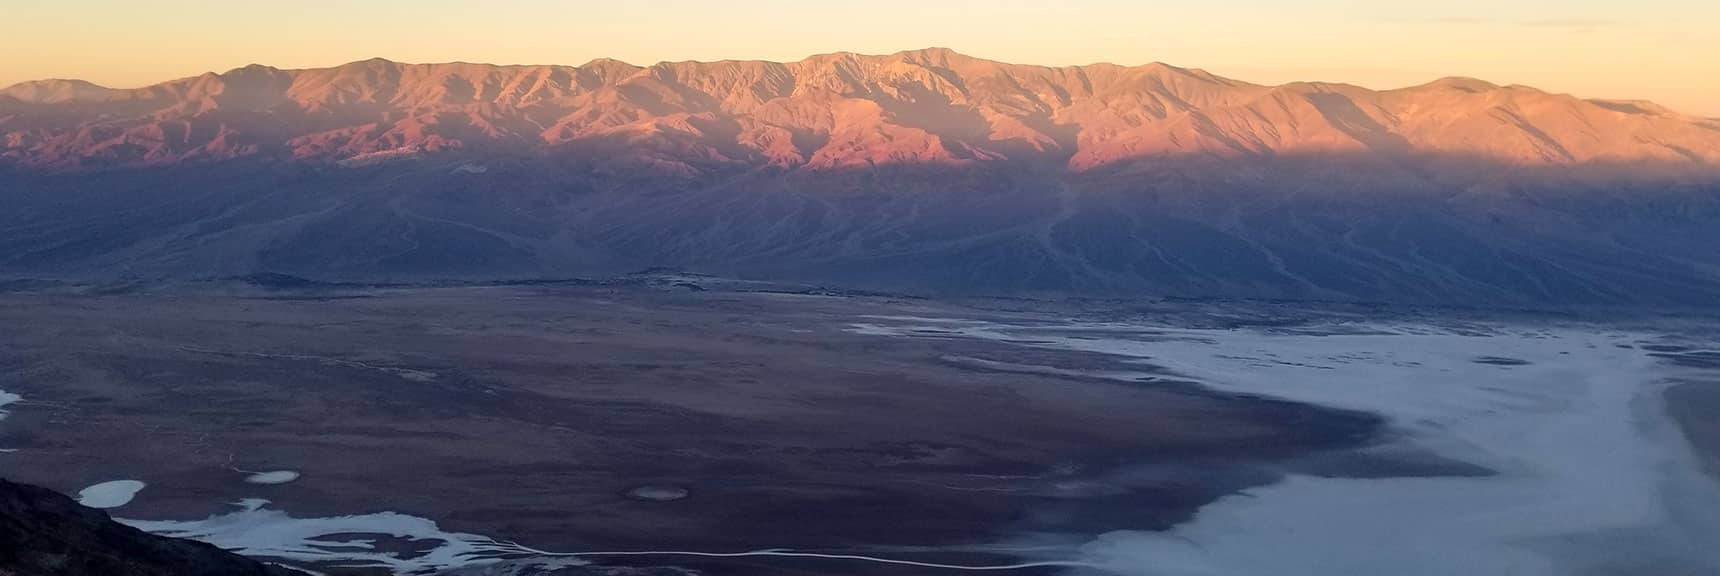 Death Valley National Park Dantes View November 24th 2018